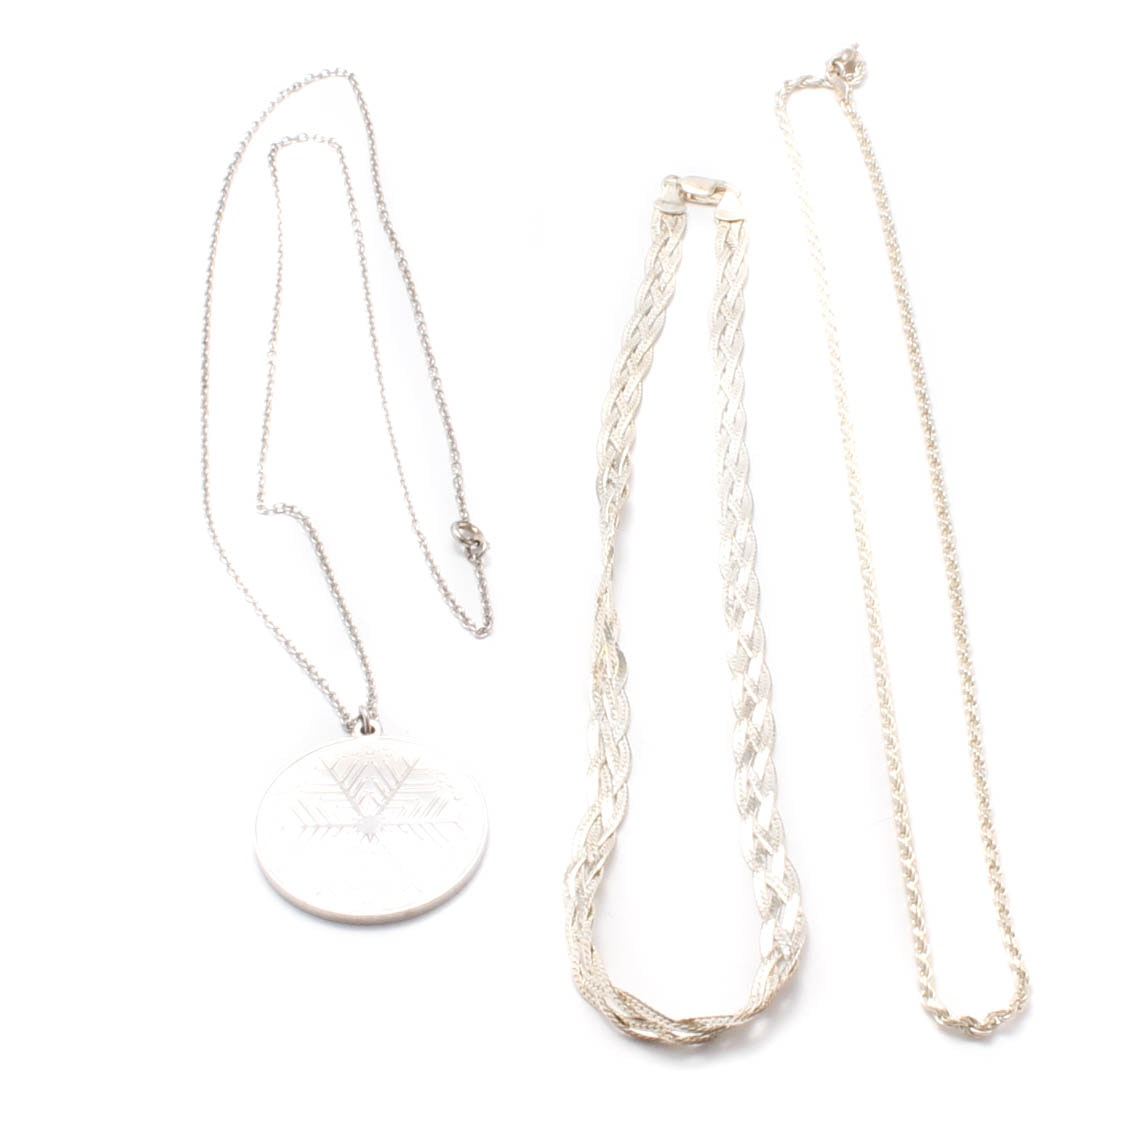 Sterling Silver Necklace Collection